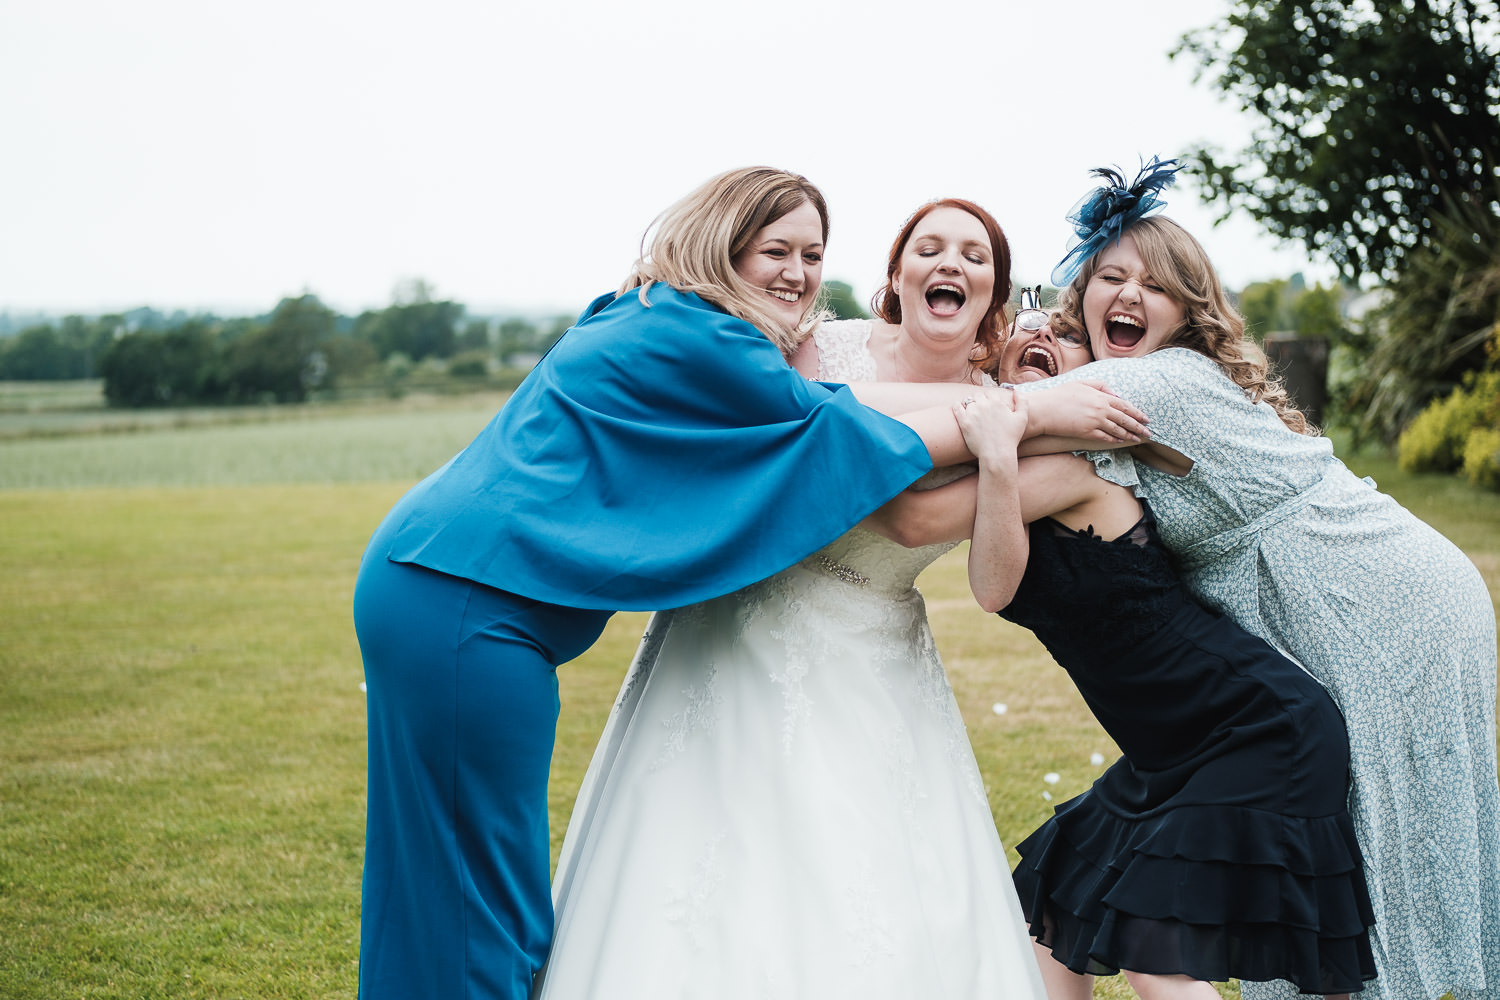 The happy bride gets super excited to spend time with her friends